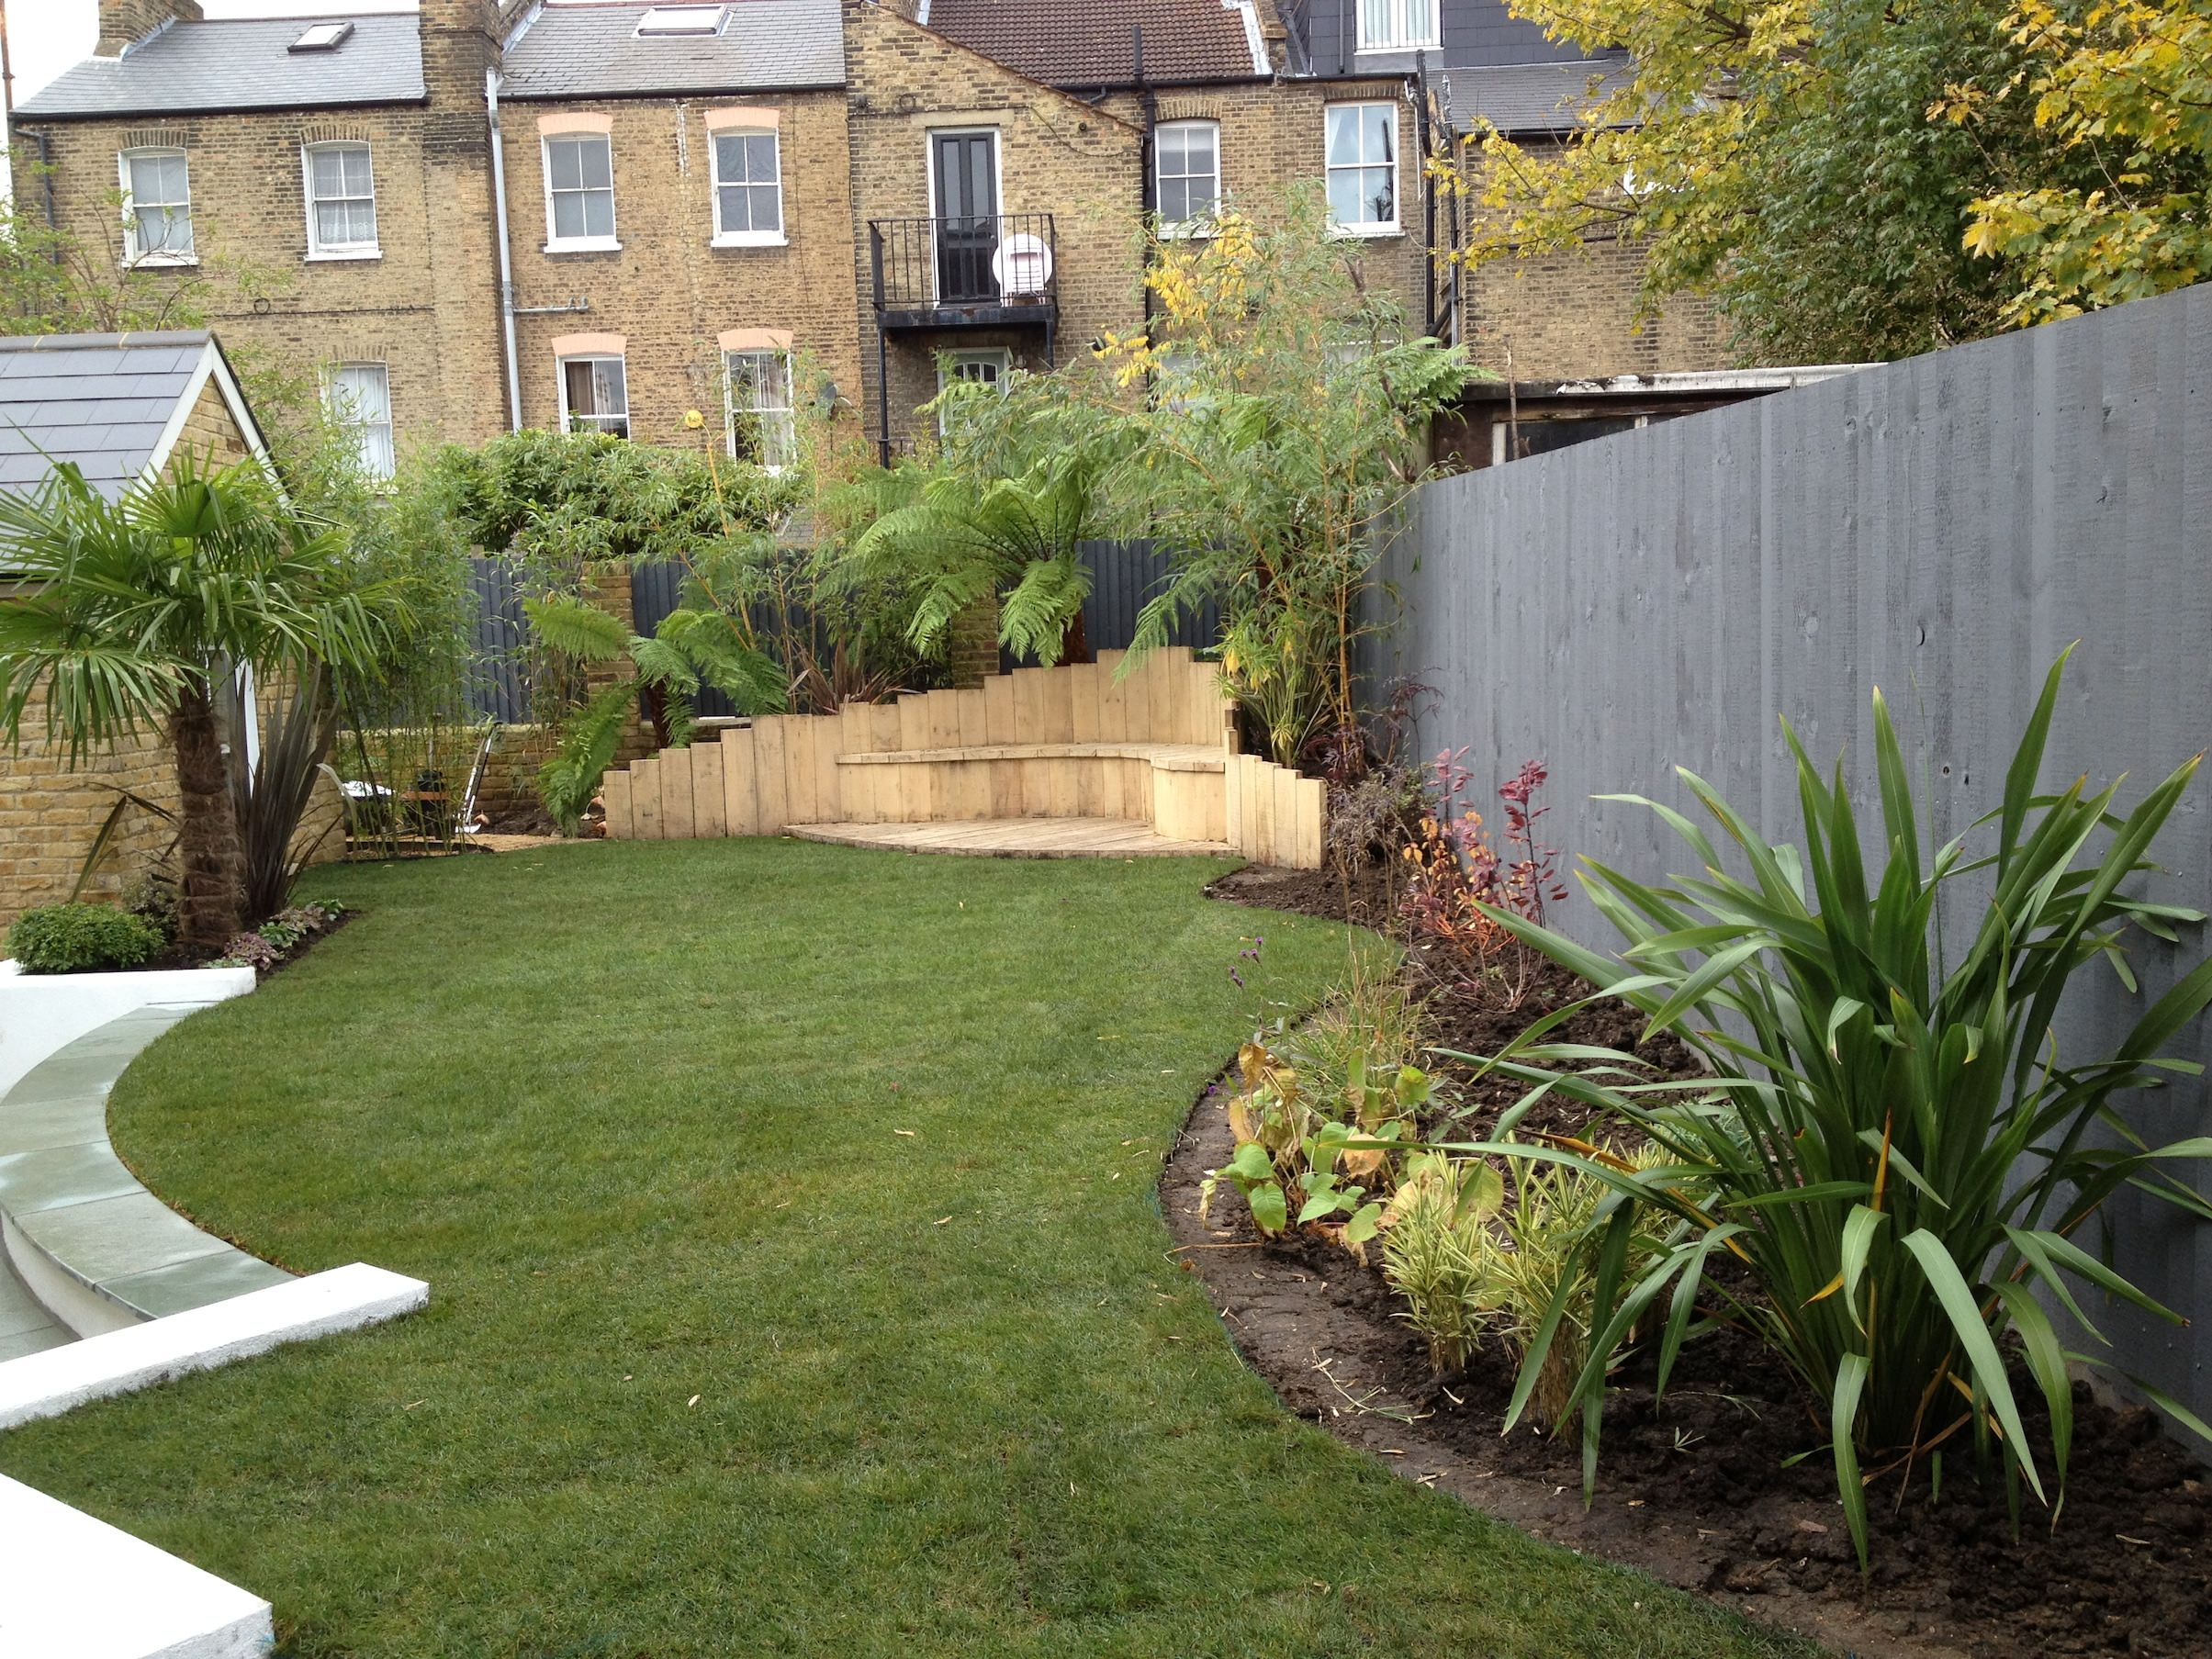 Low maintenance garden designs garden club london for New house garden design ideas